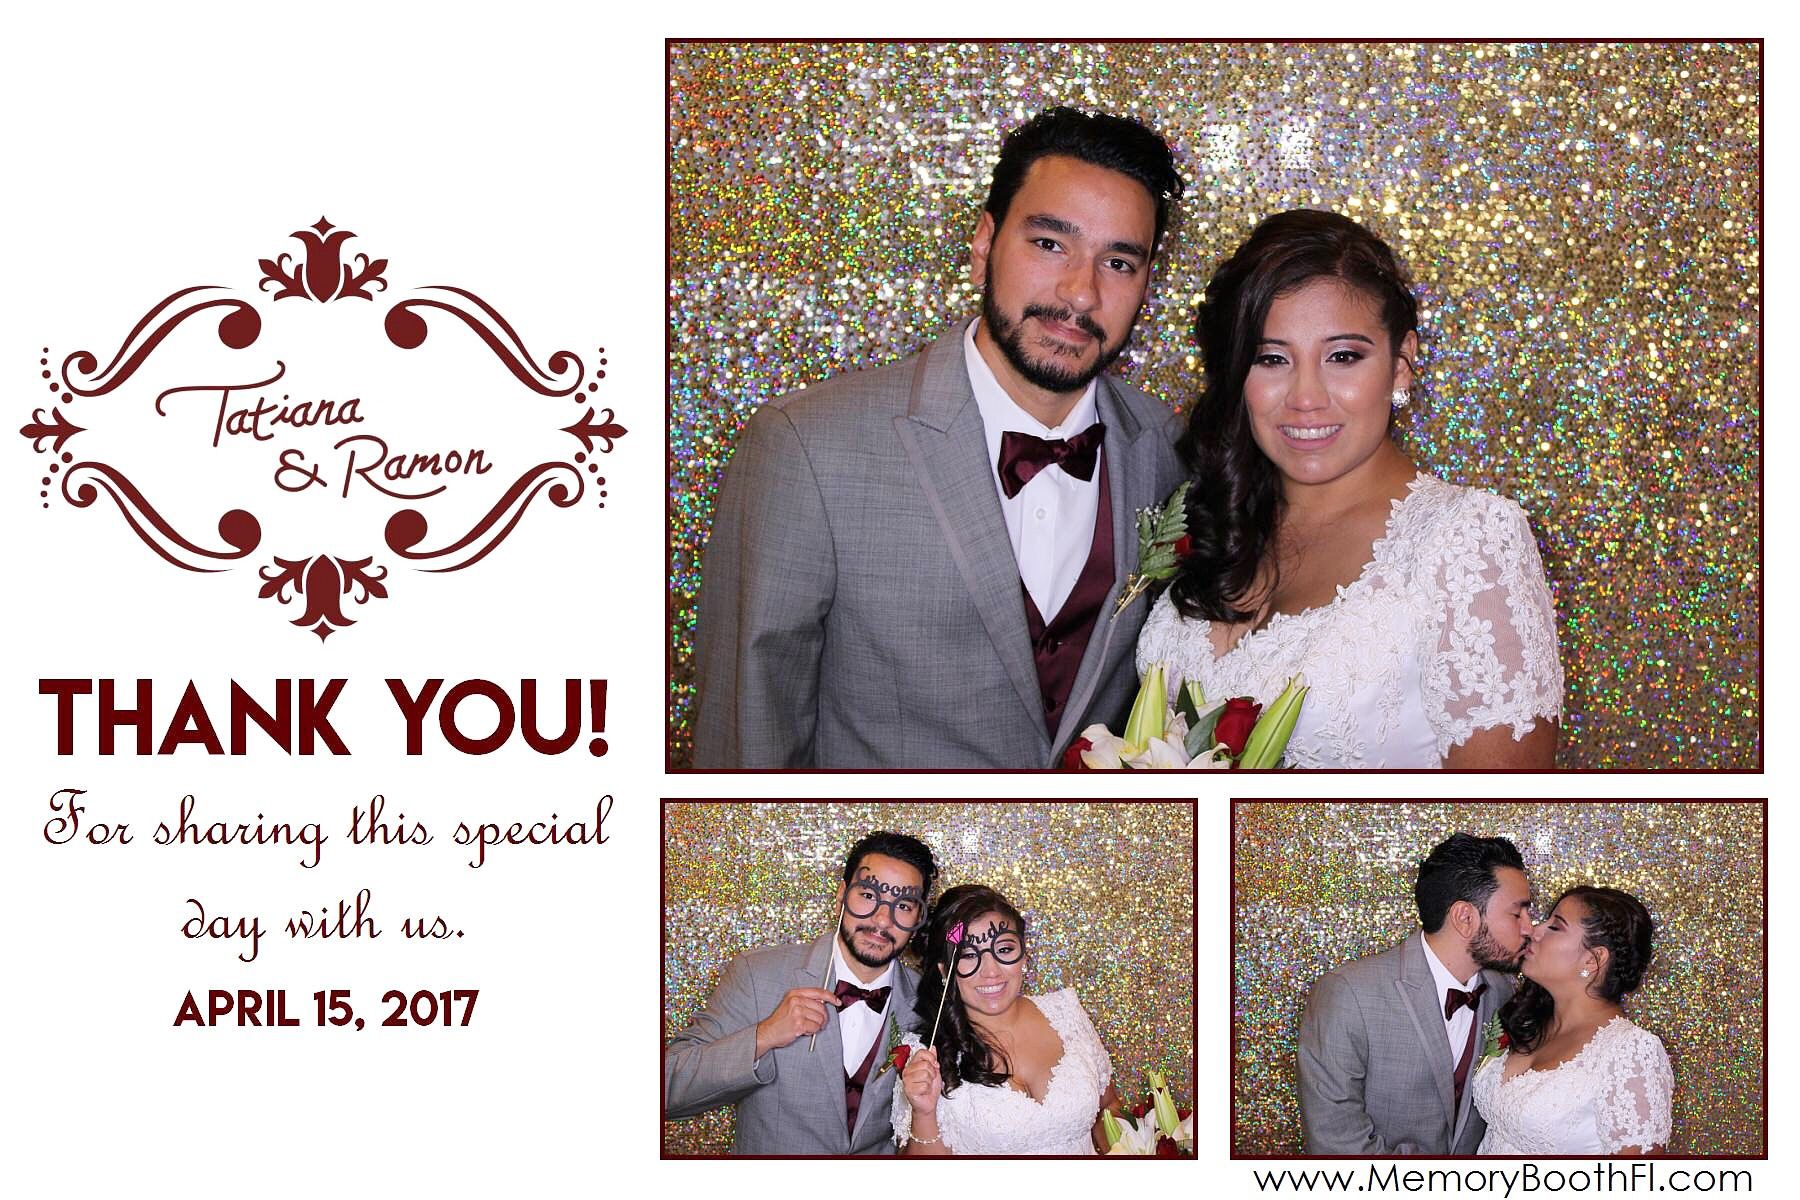 wedding photo booth props printable%0A DaJanee u    s wedding photo booth template    Free Wedding Photo Booth Template  Designs and Fun Event Pictures    Pinterest   Photo booth  Rustic photo  booth